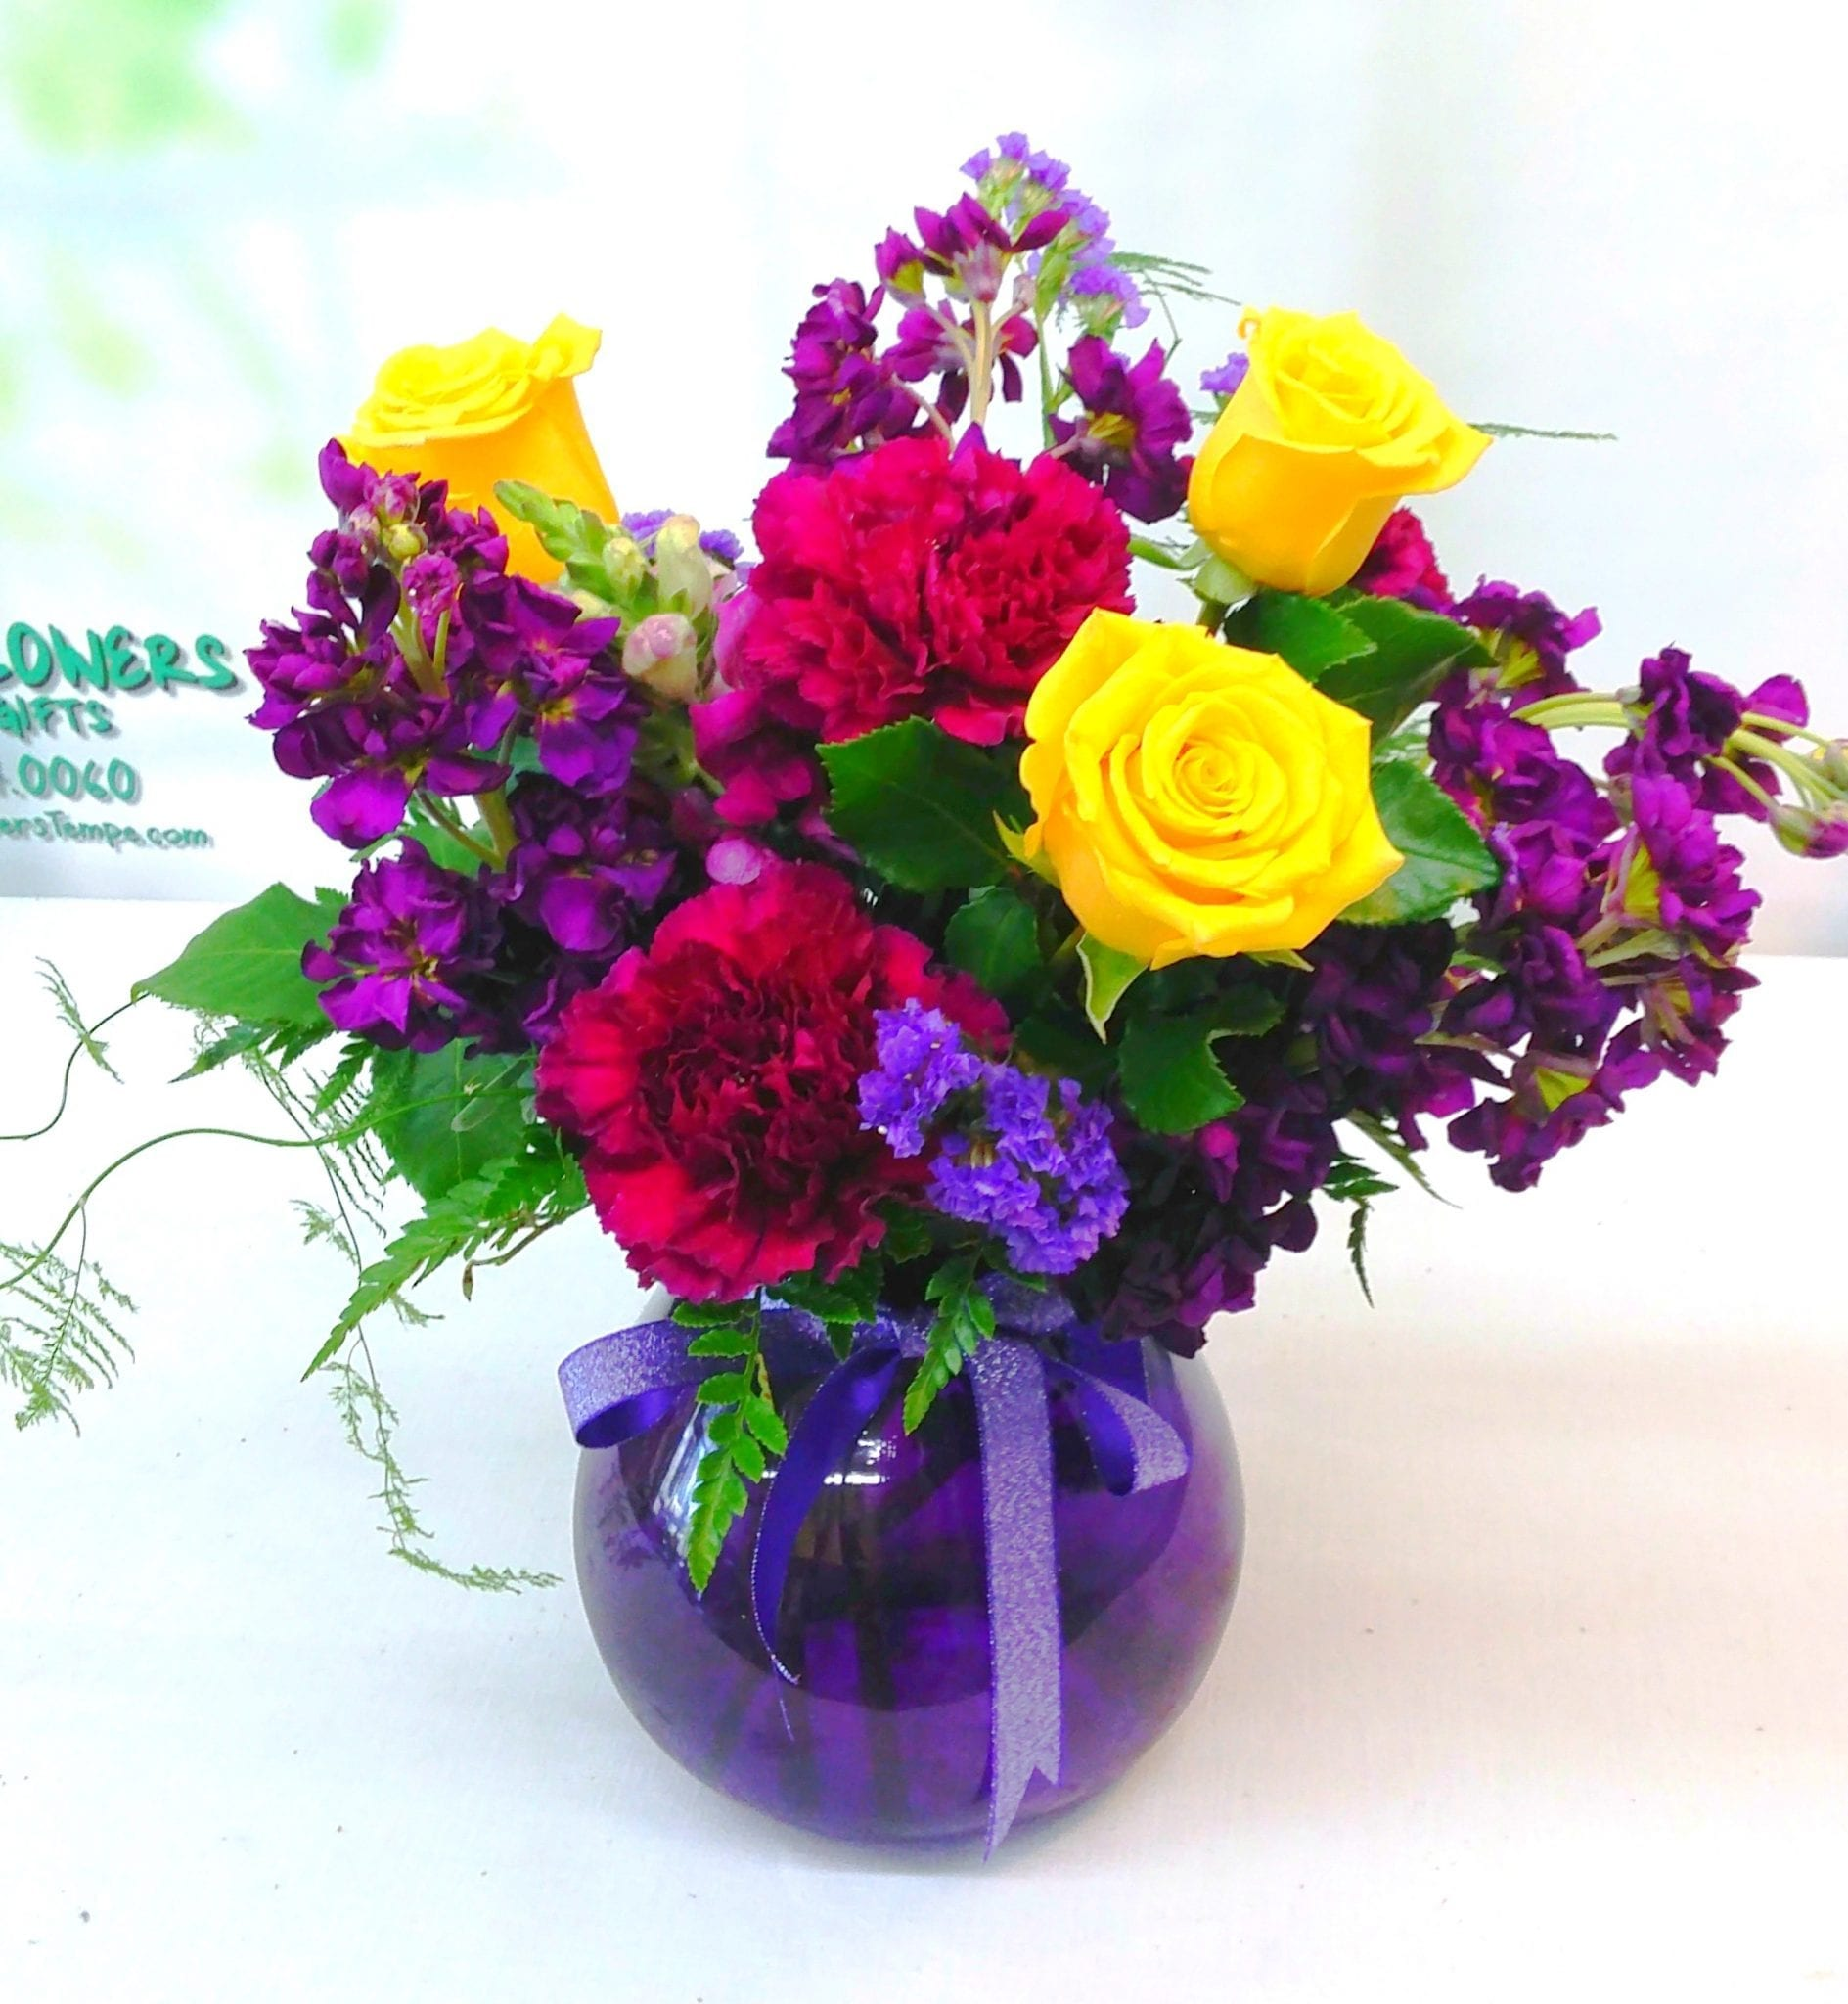 Shades of Purple in a Vase